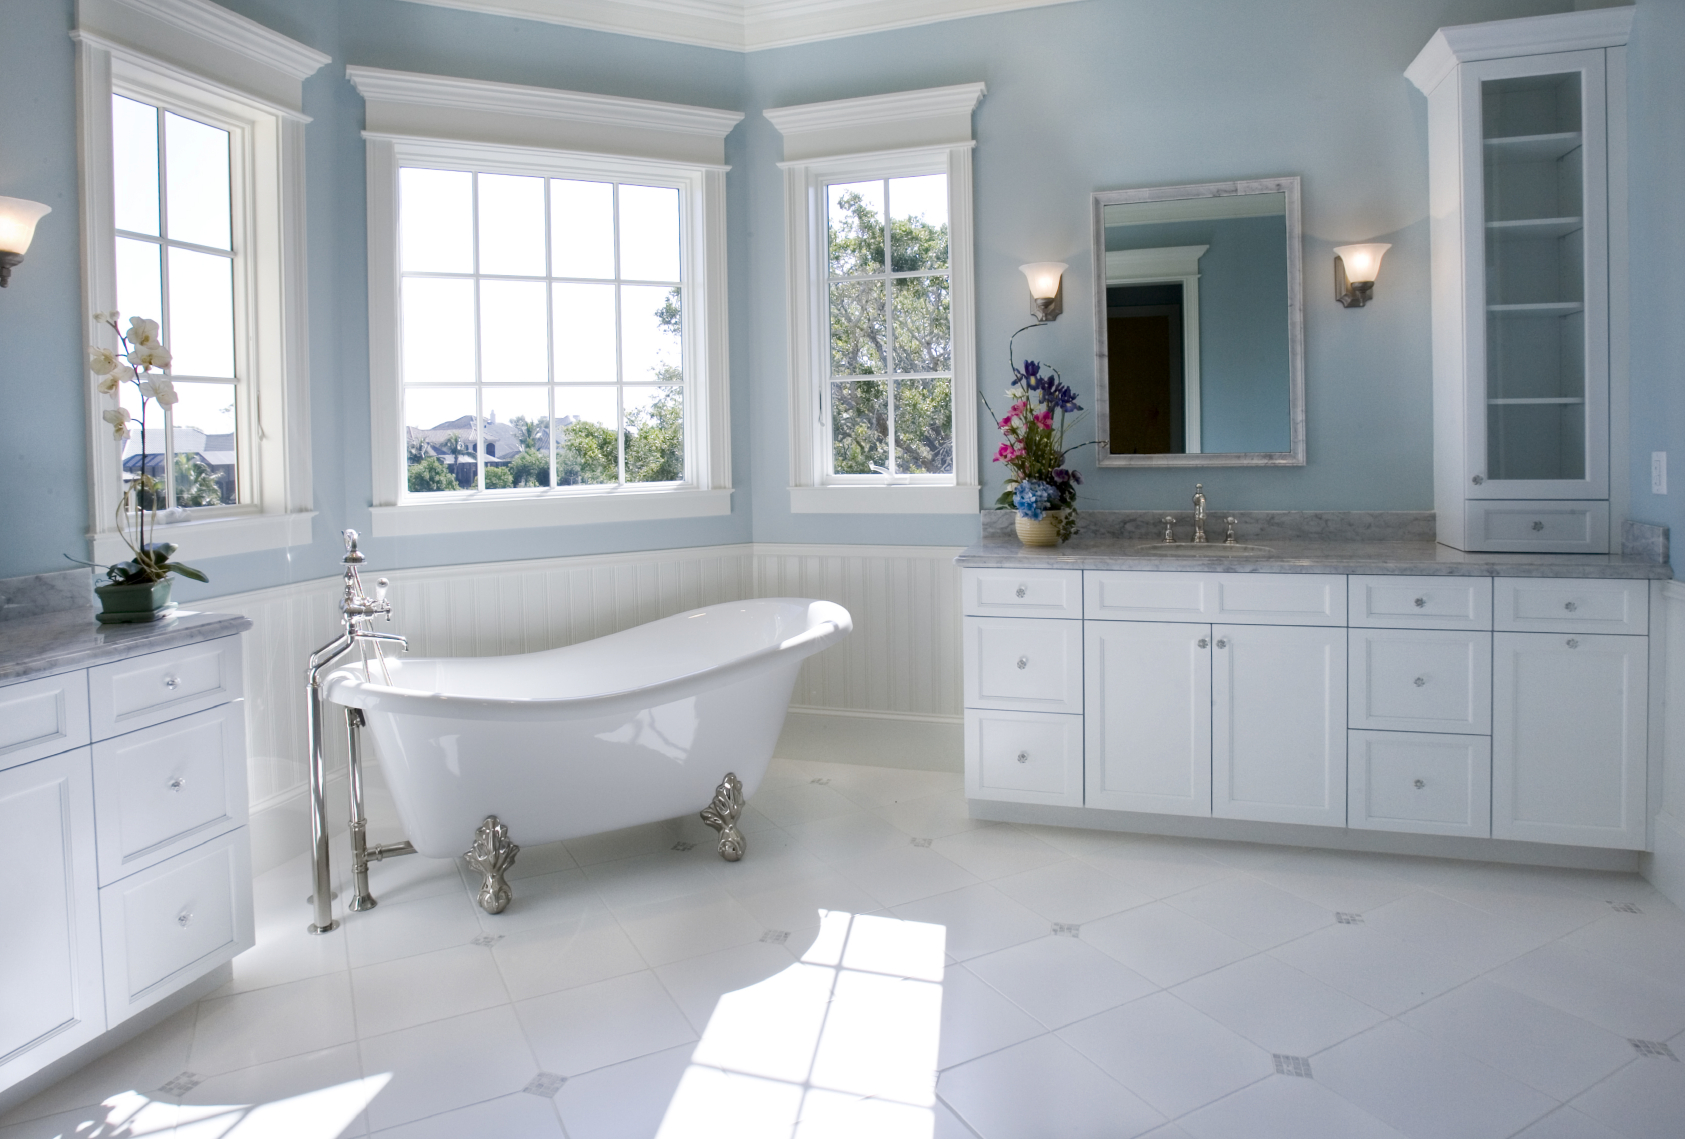 soft sky blue walls float above the white cabinetry and marble flooring in this bathroom